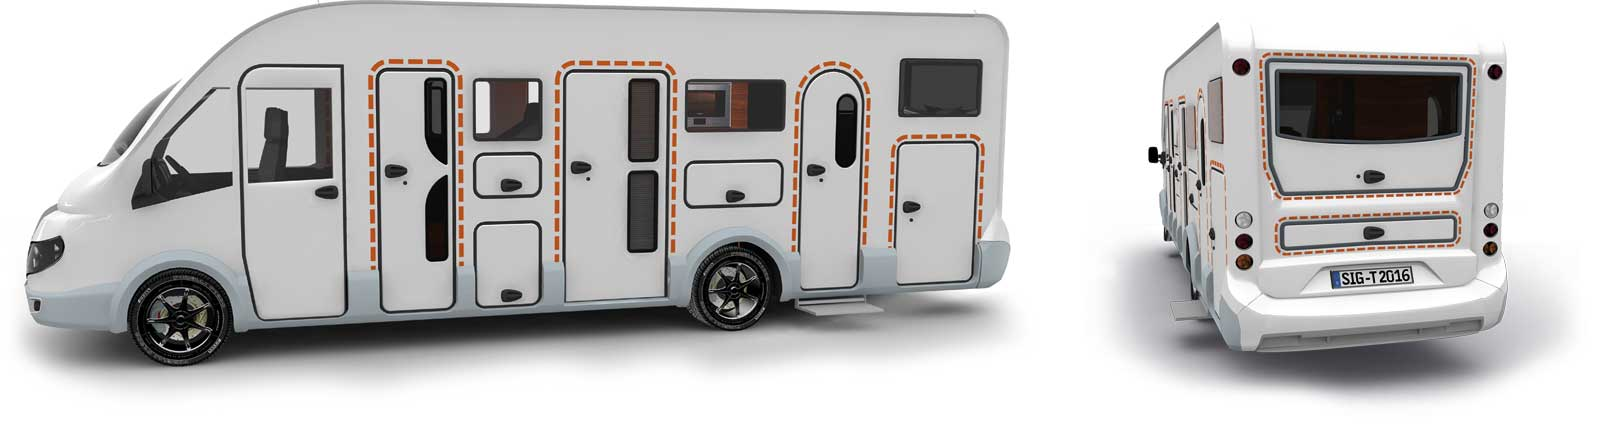 Satisfied tegos customers with Karmann Mobil caravans and RVs